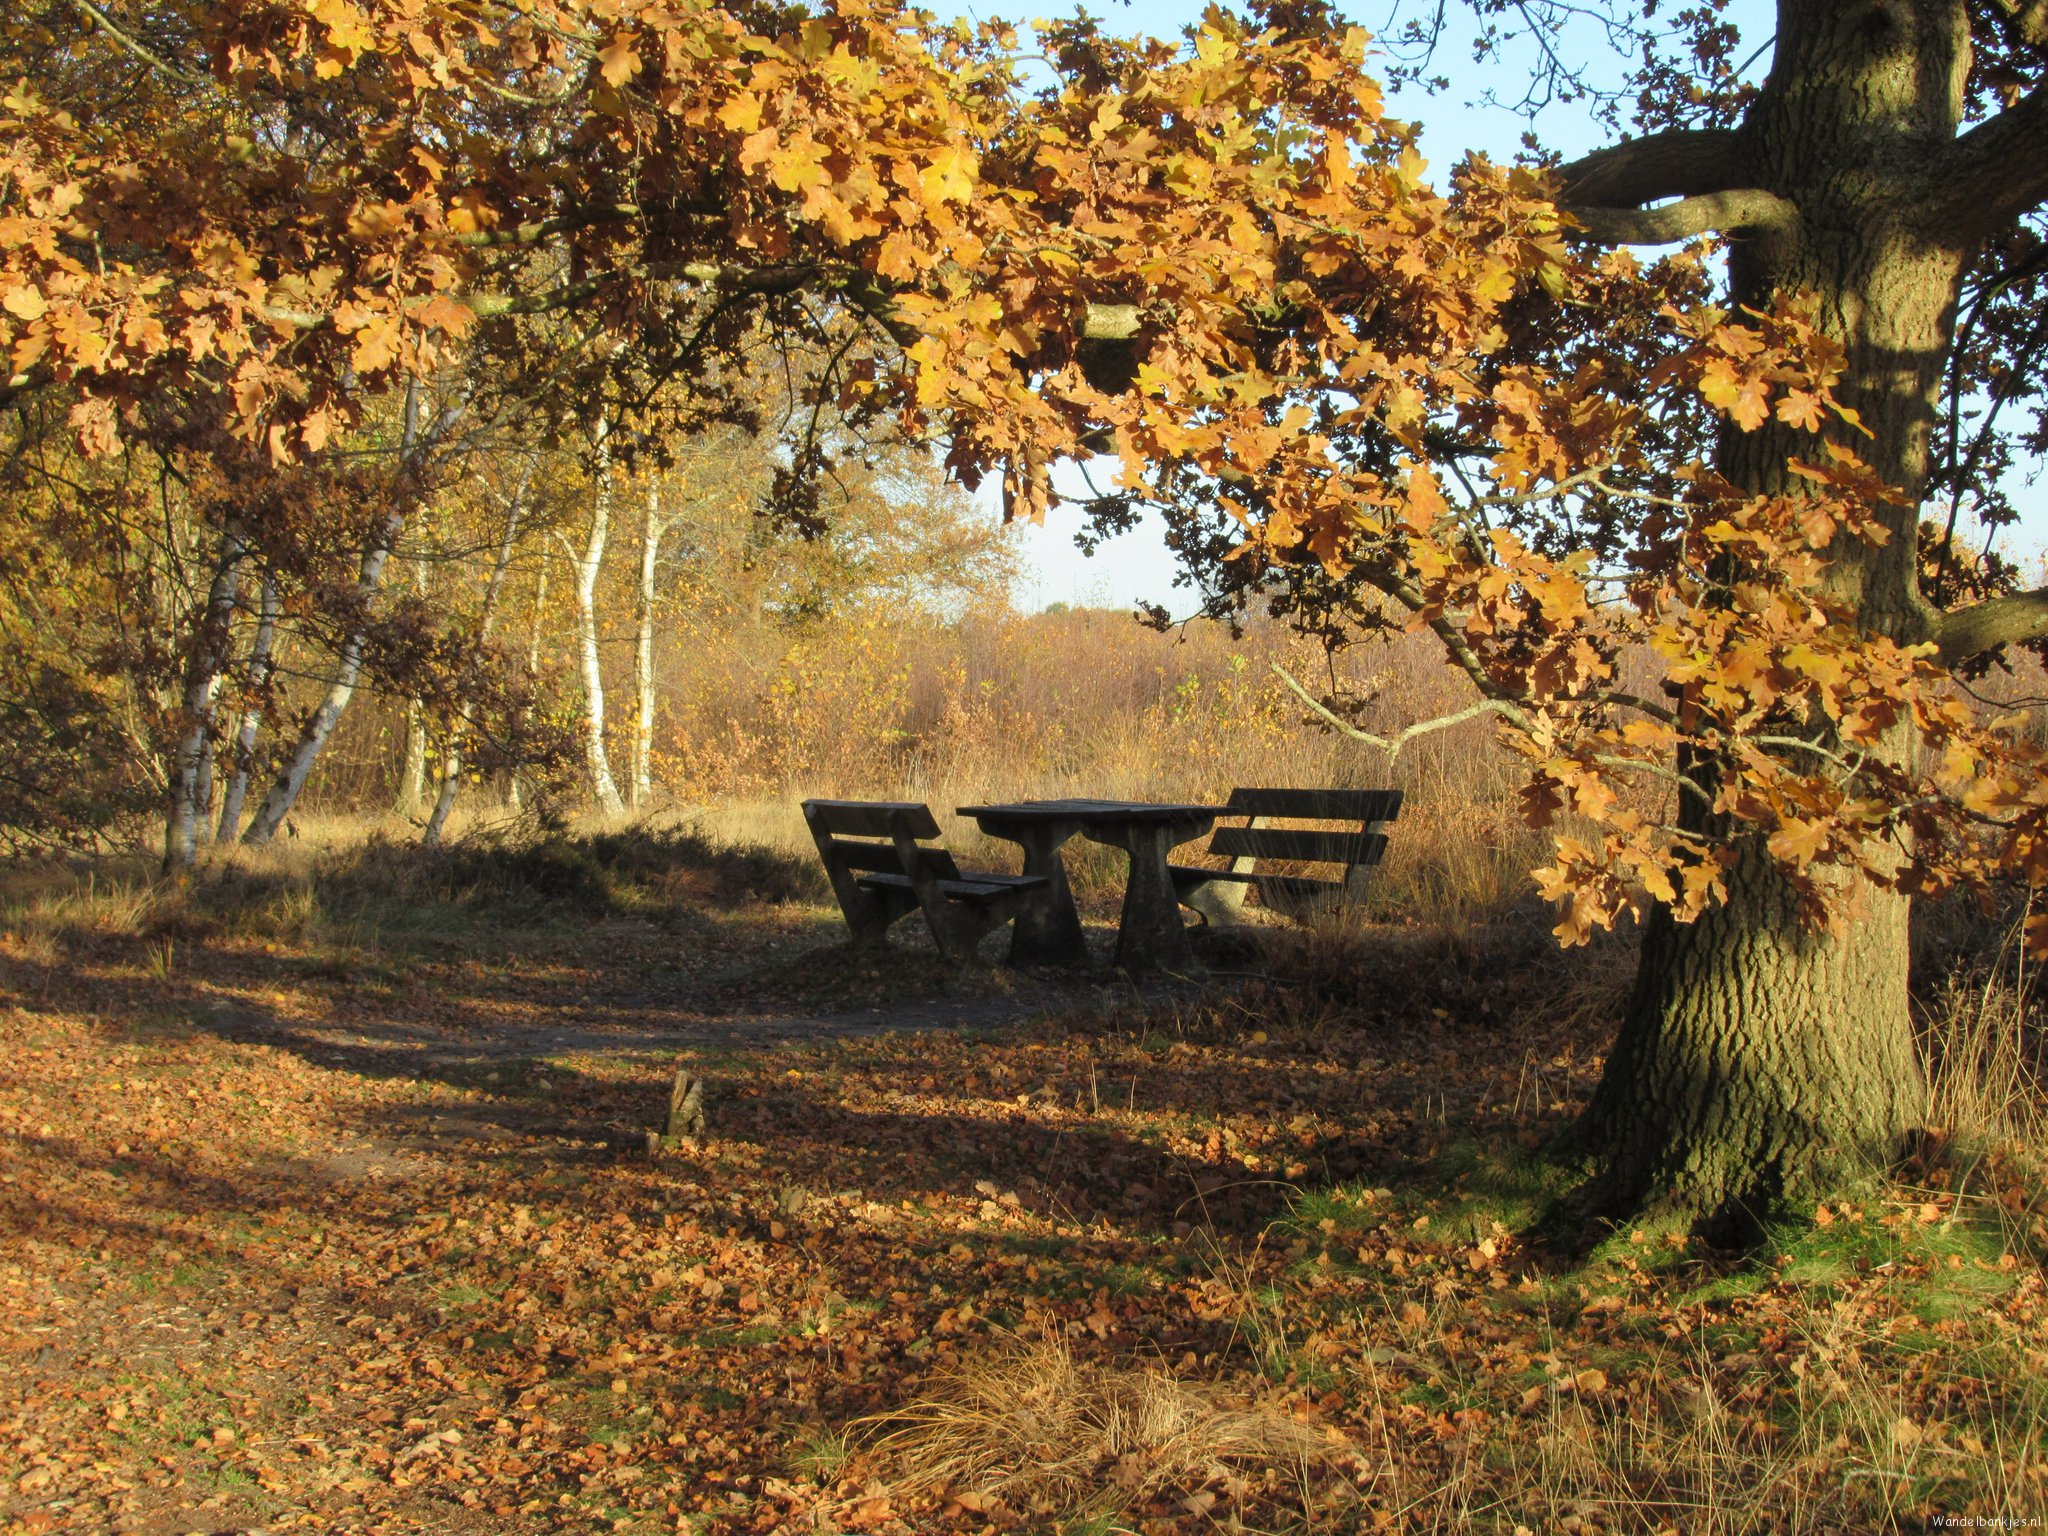 rt-mariaheukers-a-sunny-autumn day-walking benches-balloerveld-drentscheaautumn-500pxrtg-https-t-co-l1337vi7dy